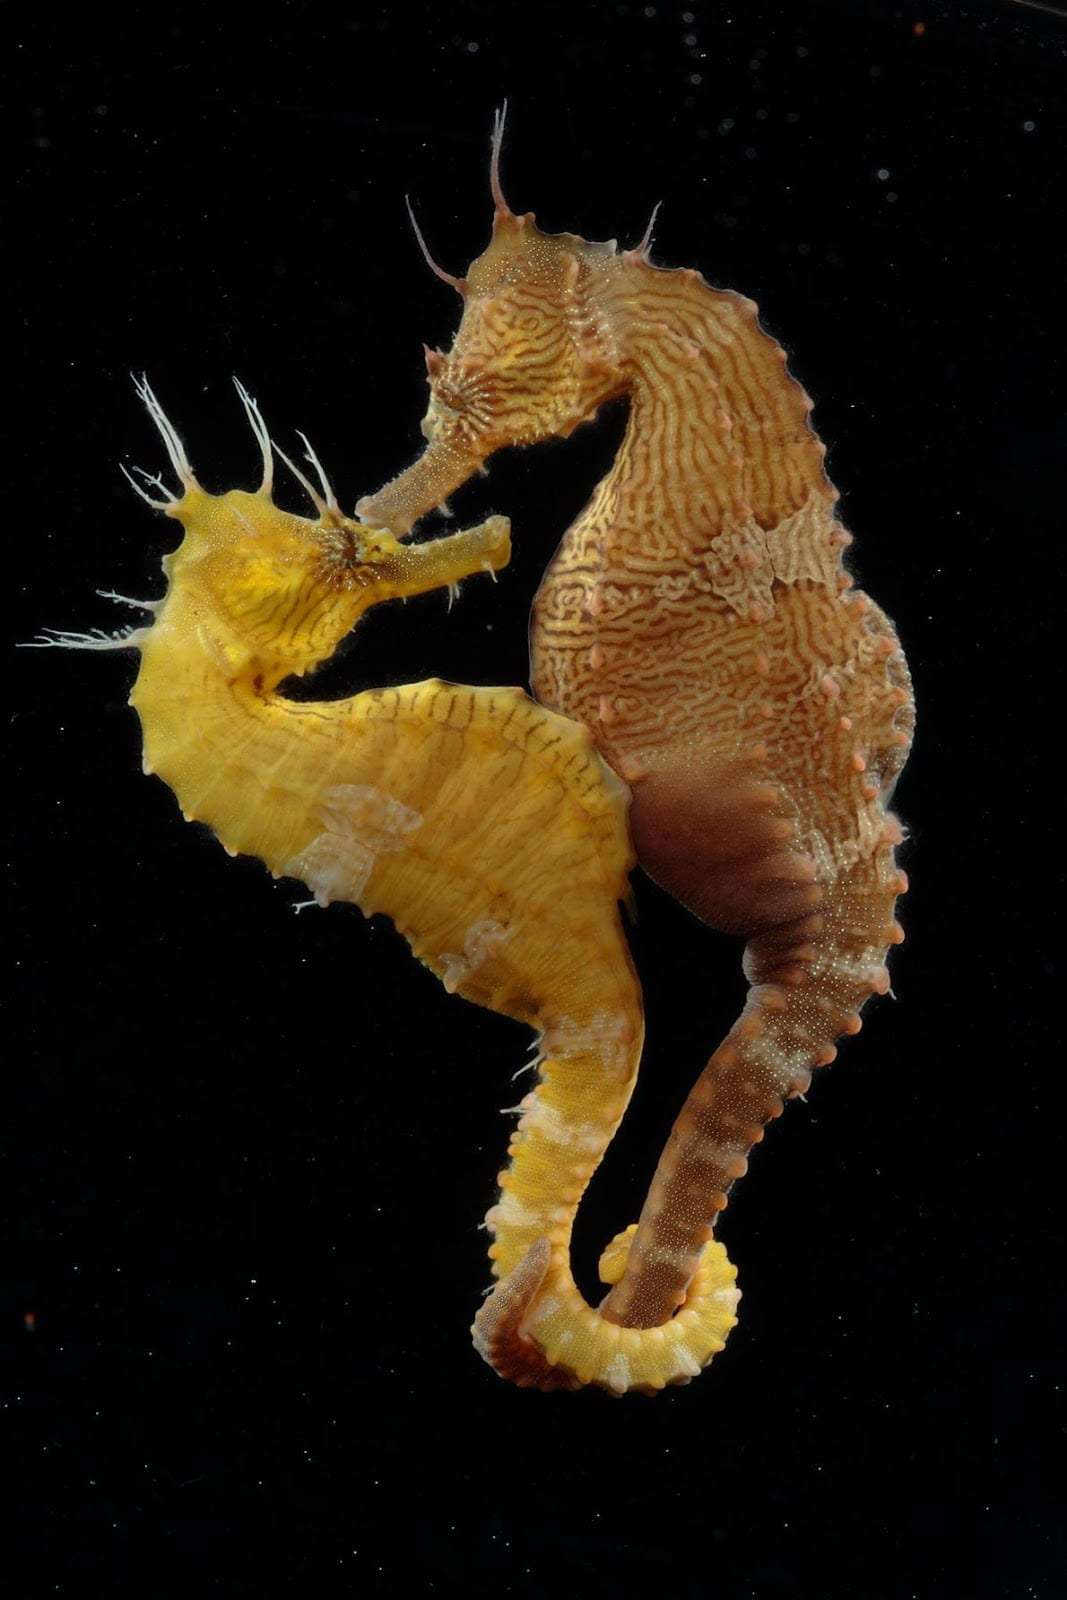 Two seahorses with their tails wrapped around each other.